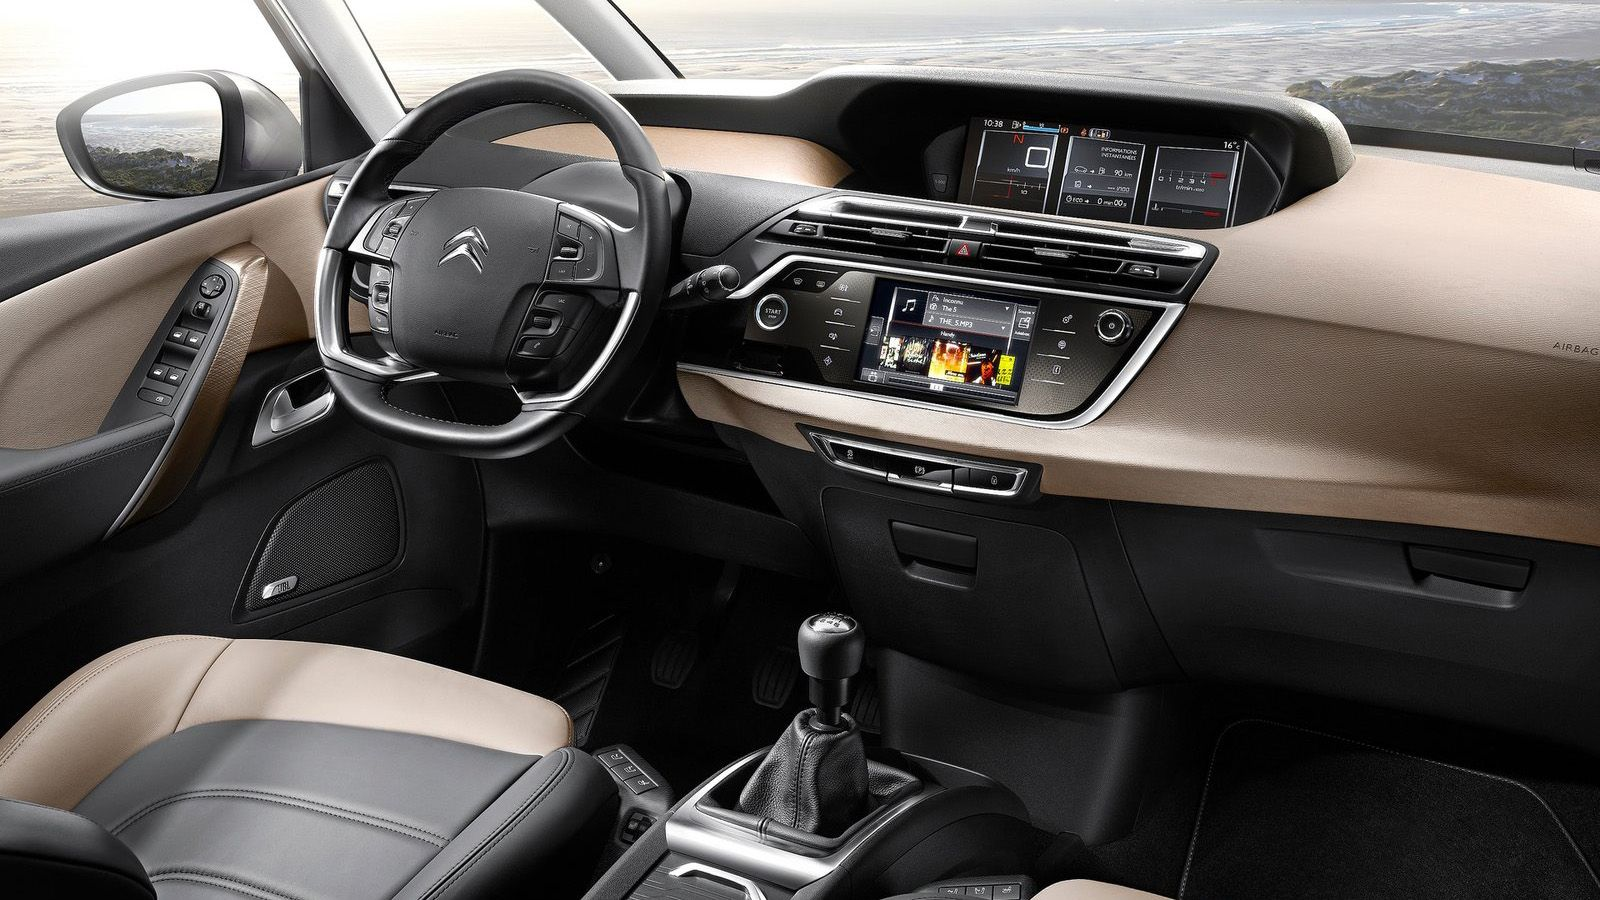 superb-design-of-the-citroen-c4-2015-interior-with-brown-grey-dash-ideas-of-the-citroen-c4-2015-interior-ideas